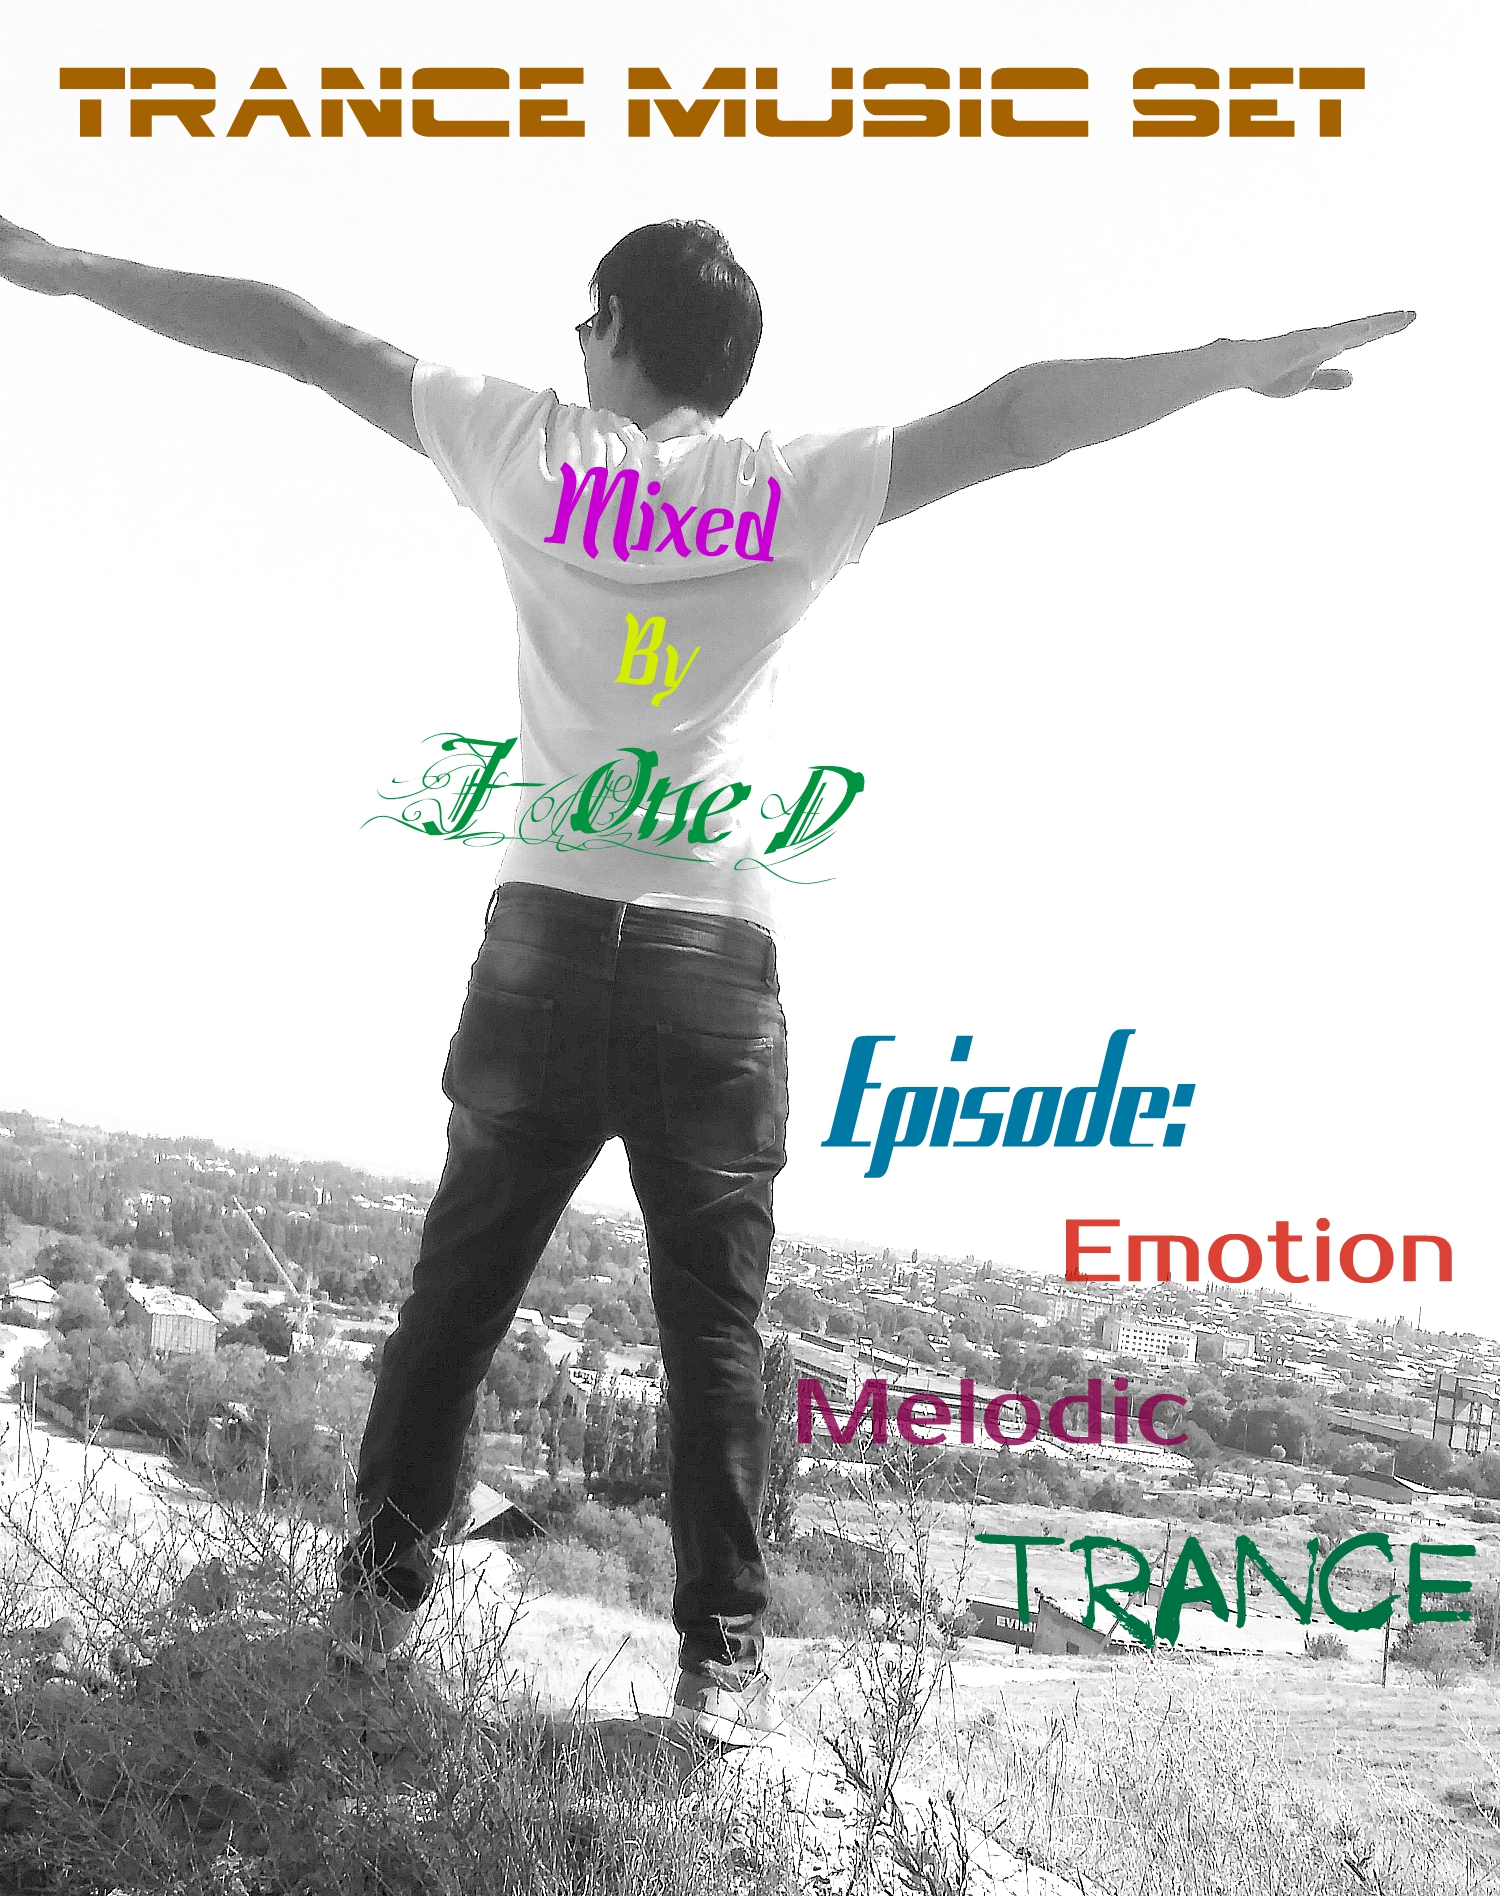 Trance Music Set - mixed by J-One D (Episode: Emotion Melodic Trance Music)